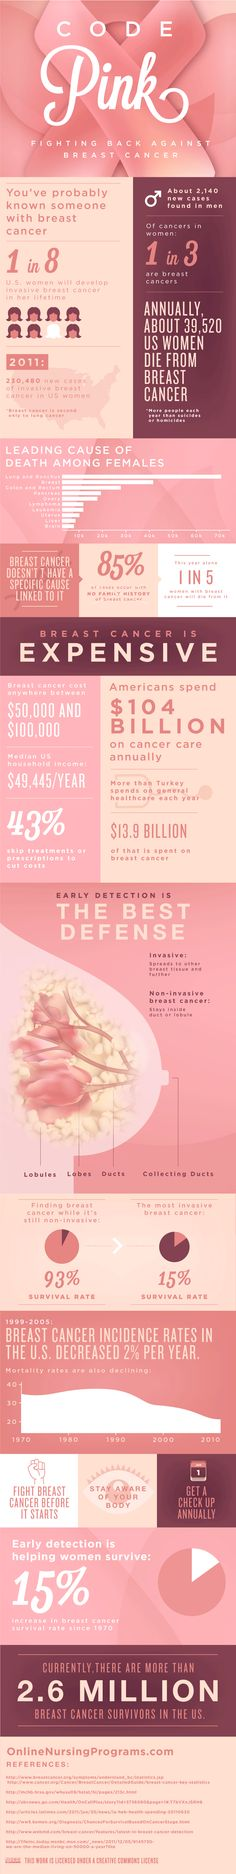 We are participating in several Race for the Cure events. Here are some interesting facts about breast cancer. Let's help find a cure! @komenoc